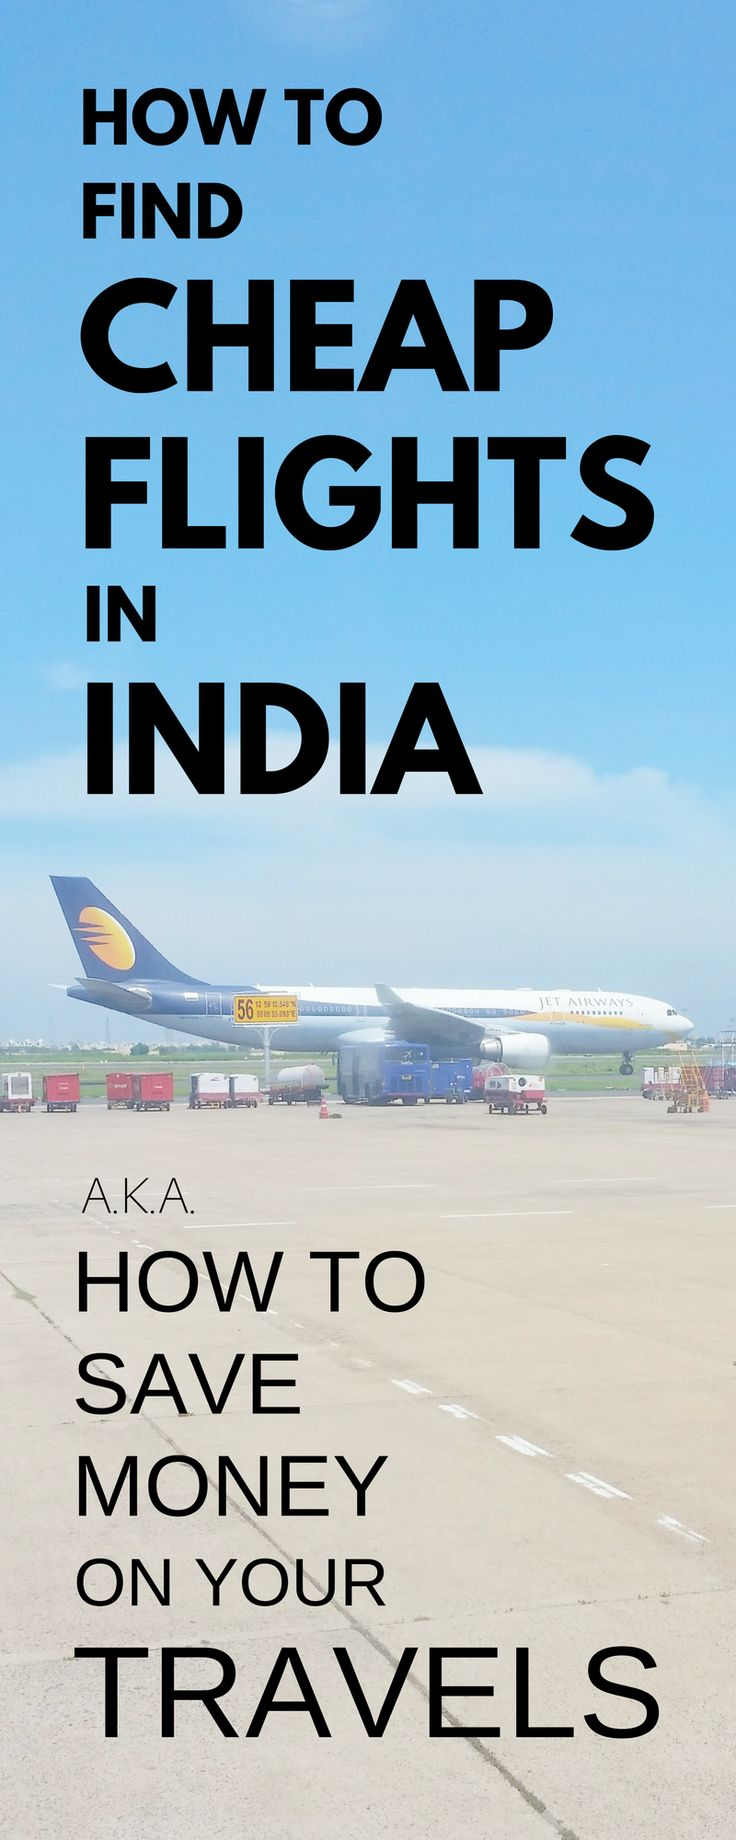 India Travel Tips, Asia: How to book cheap flights in India. For weeks long backpacking Asia. Go for plane tickets instead of train using booking site for travel hacking. Find best time to fly. Things to do in India even if on budget. Put on checklist along with list of what to pack, what to wear in India. International travel ideas for world adventures, bucket list destinations! For trips to Mumbai, Delhi, Rajasthan, Jaipur, Amritsar, Kerala, North India, South India! Save money for travel.